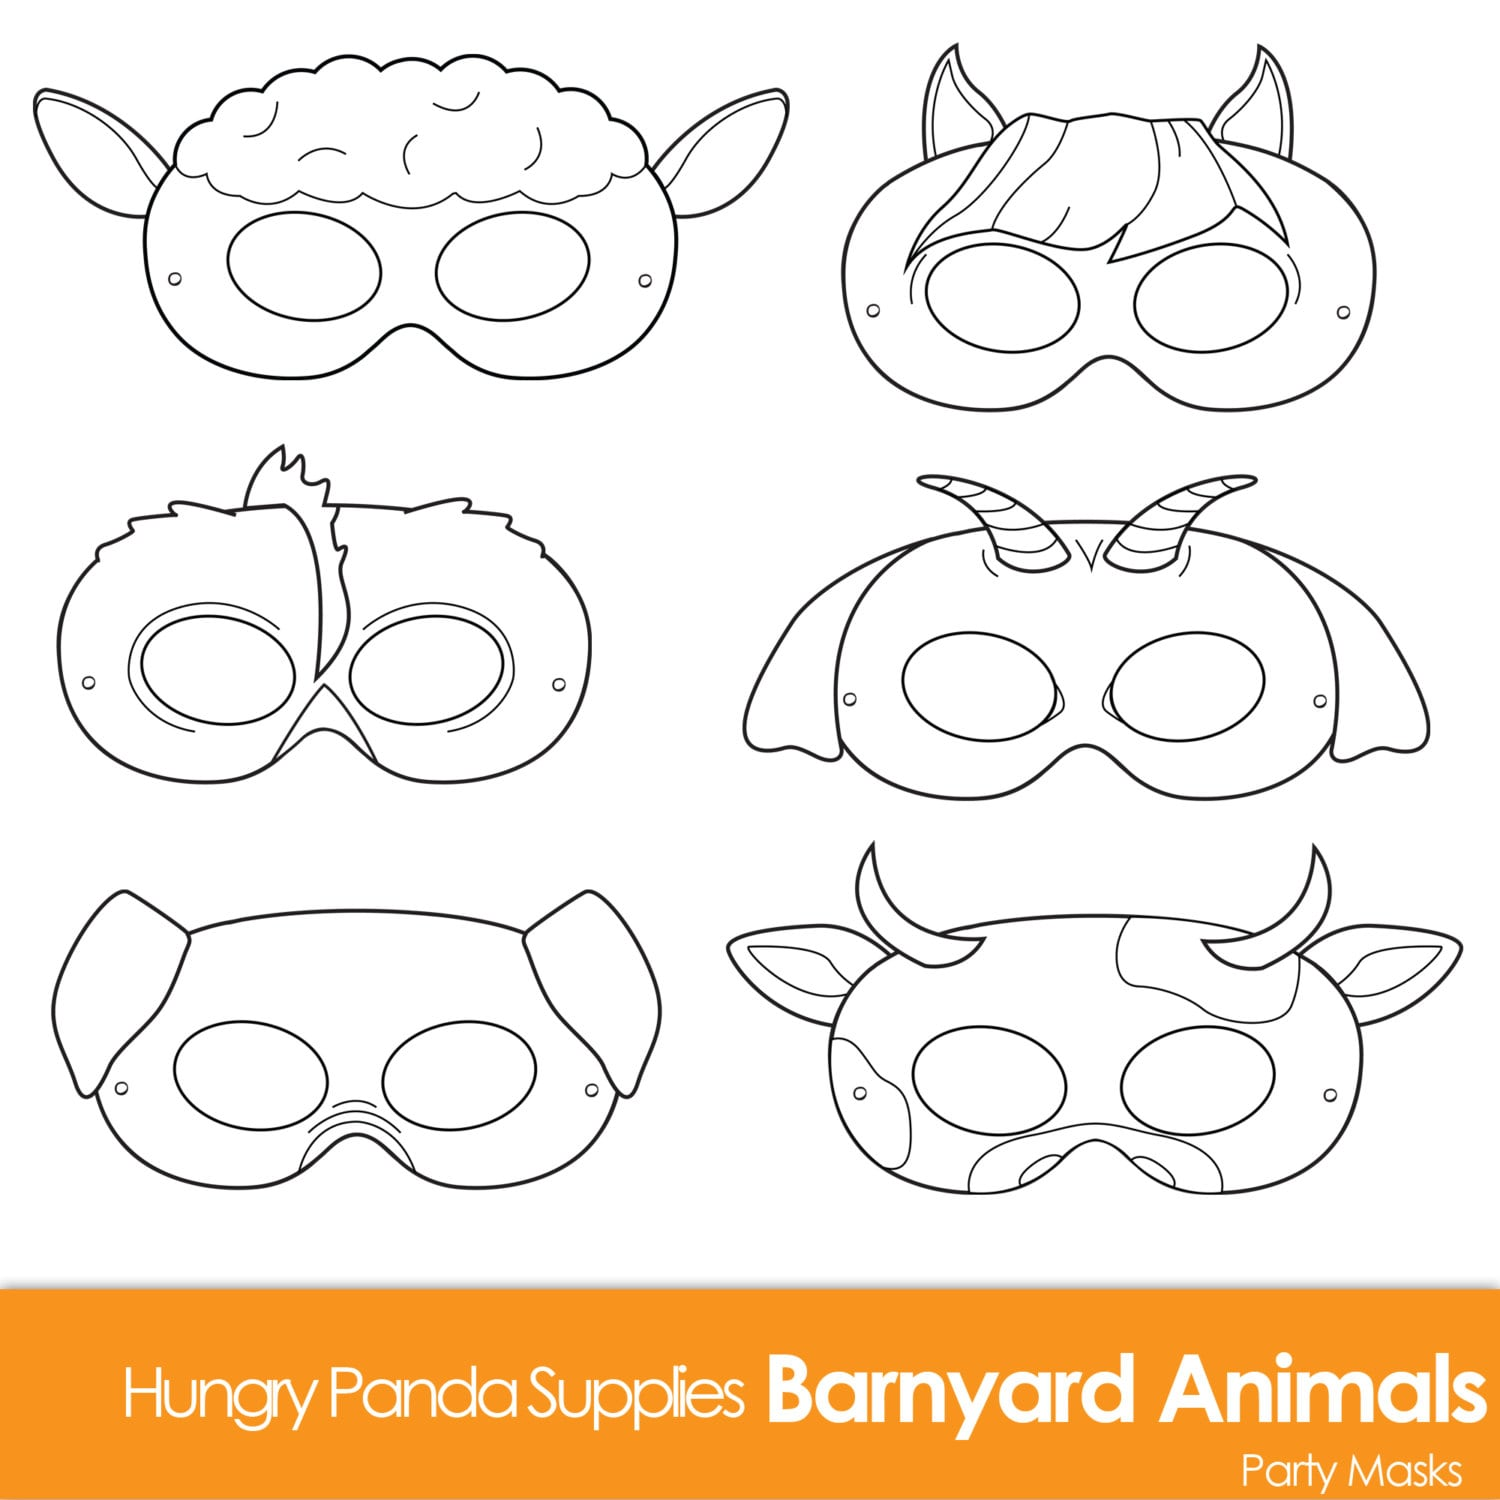 Barnyard Animals Printable Coloring